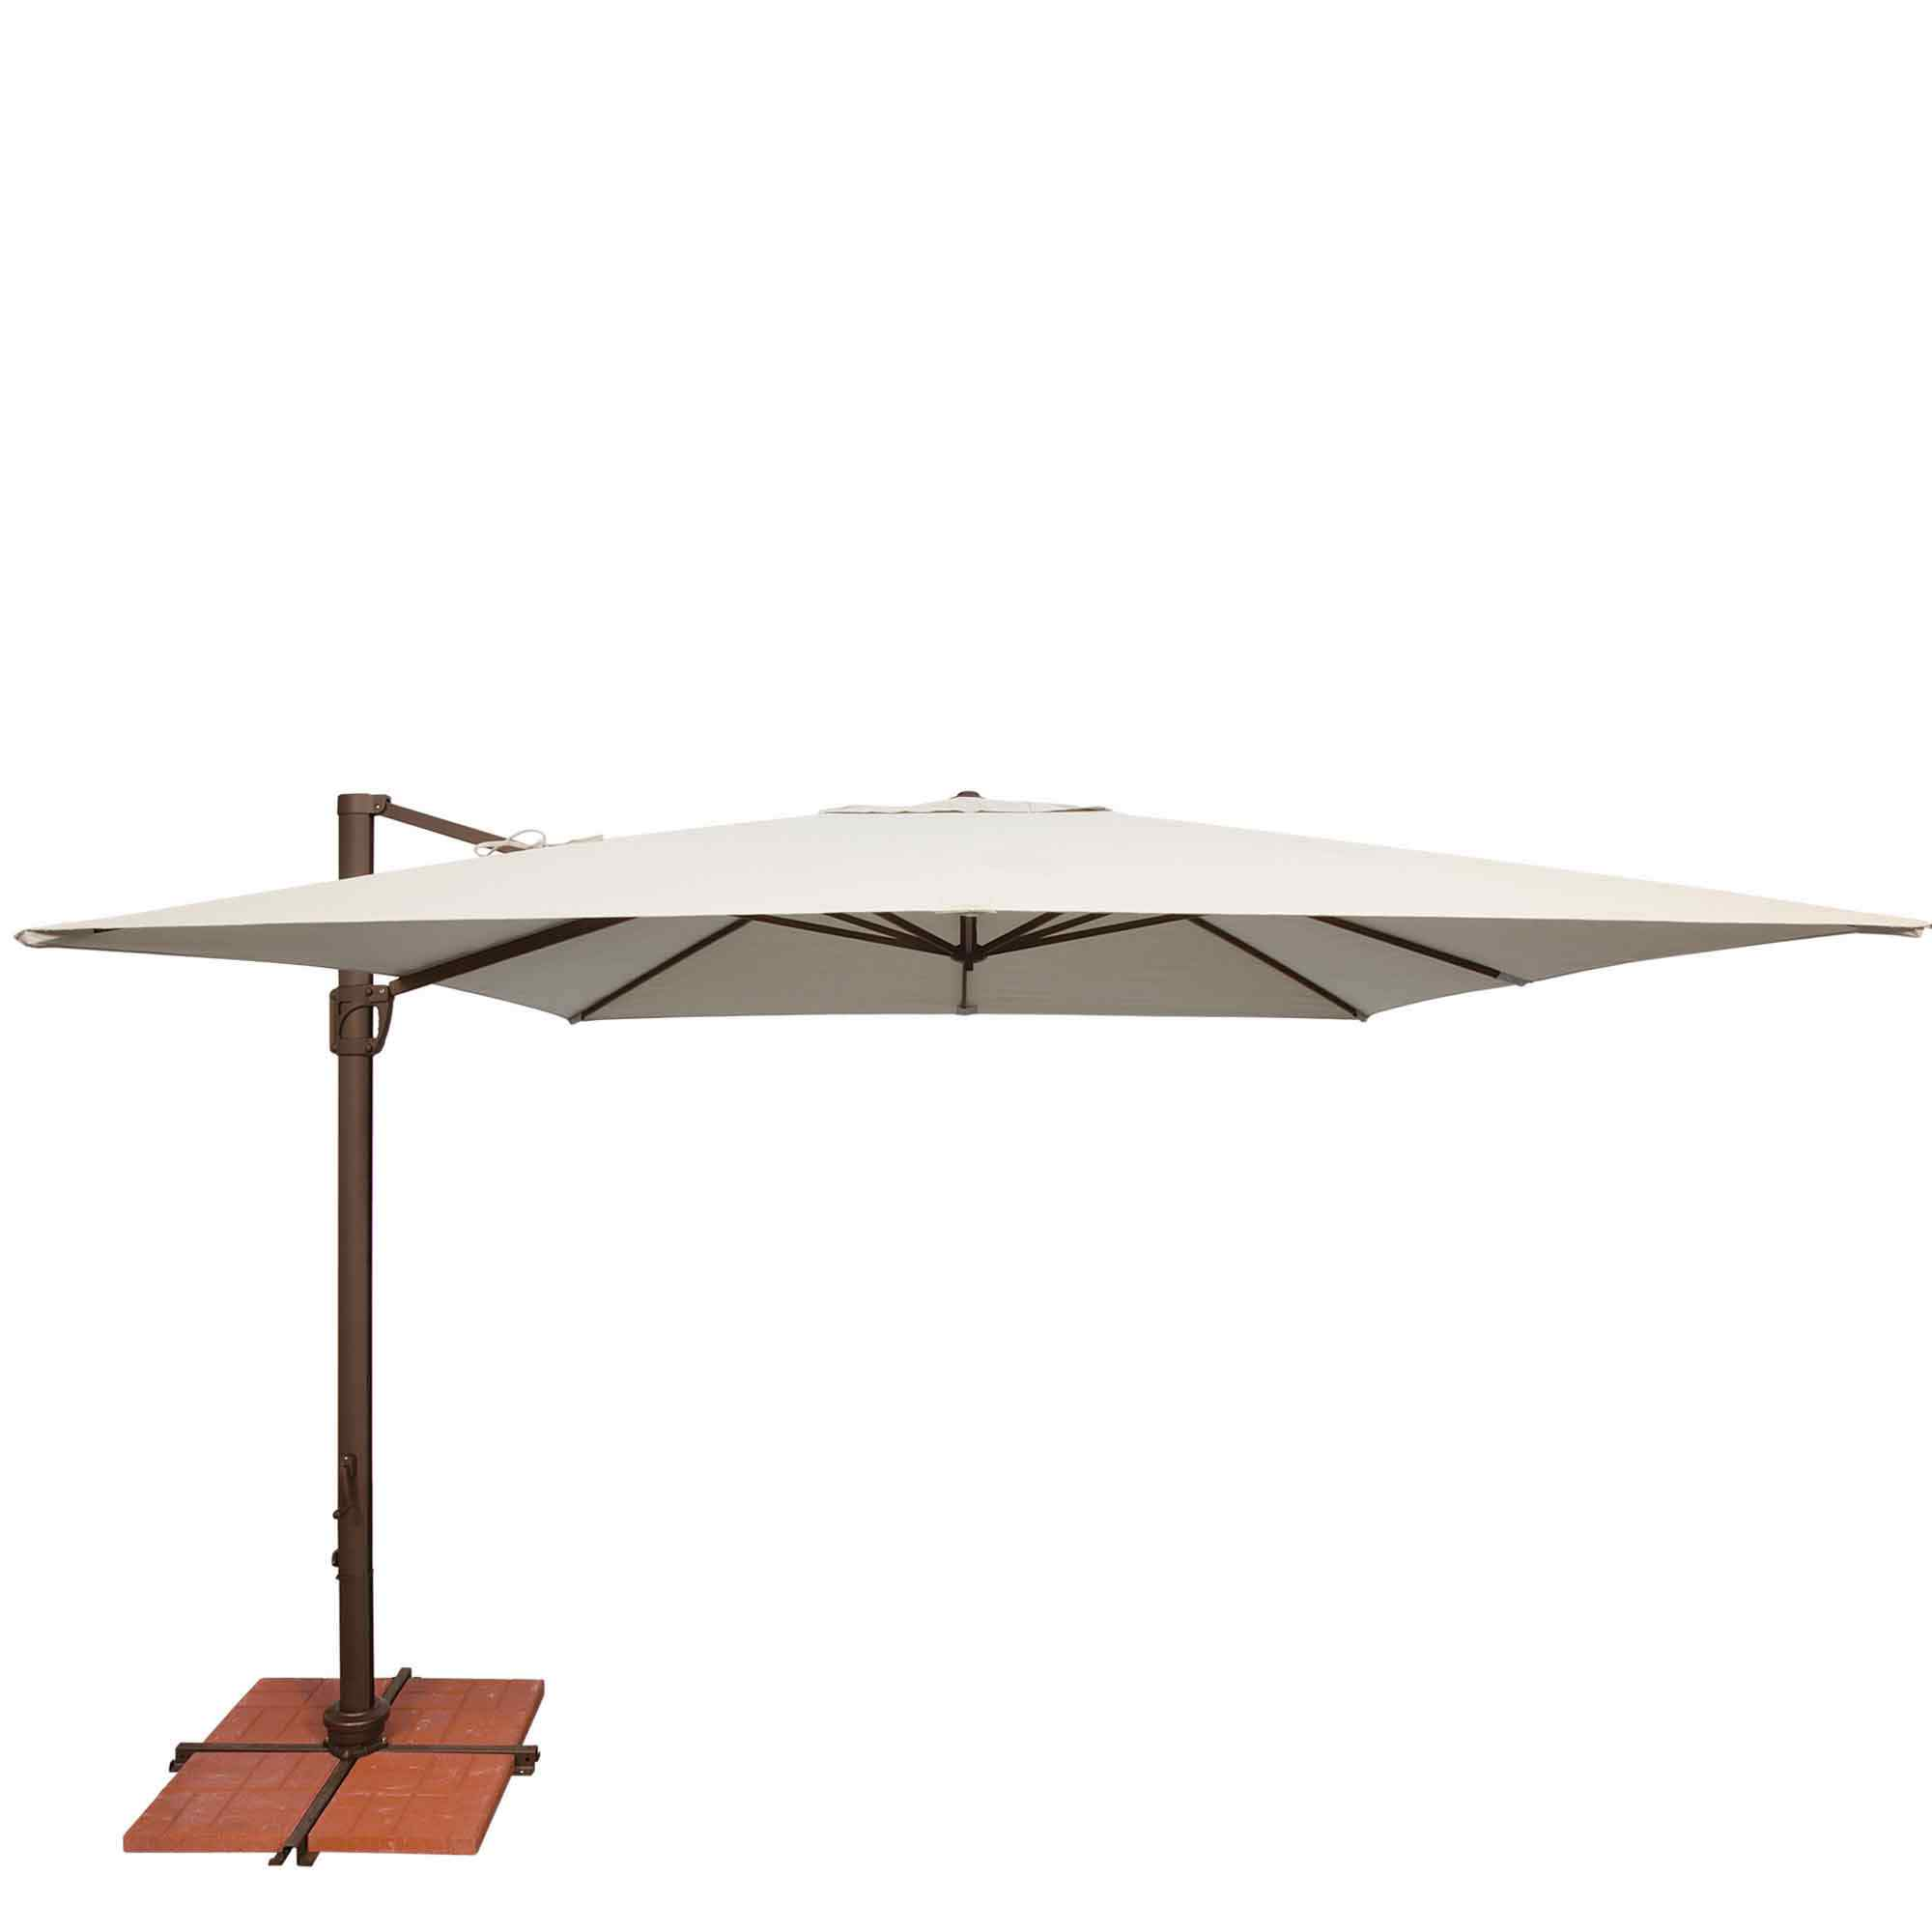 Southern Patio Umbrella Replacement Canopy Replacement Umbrella